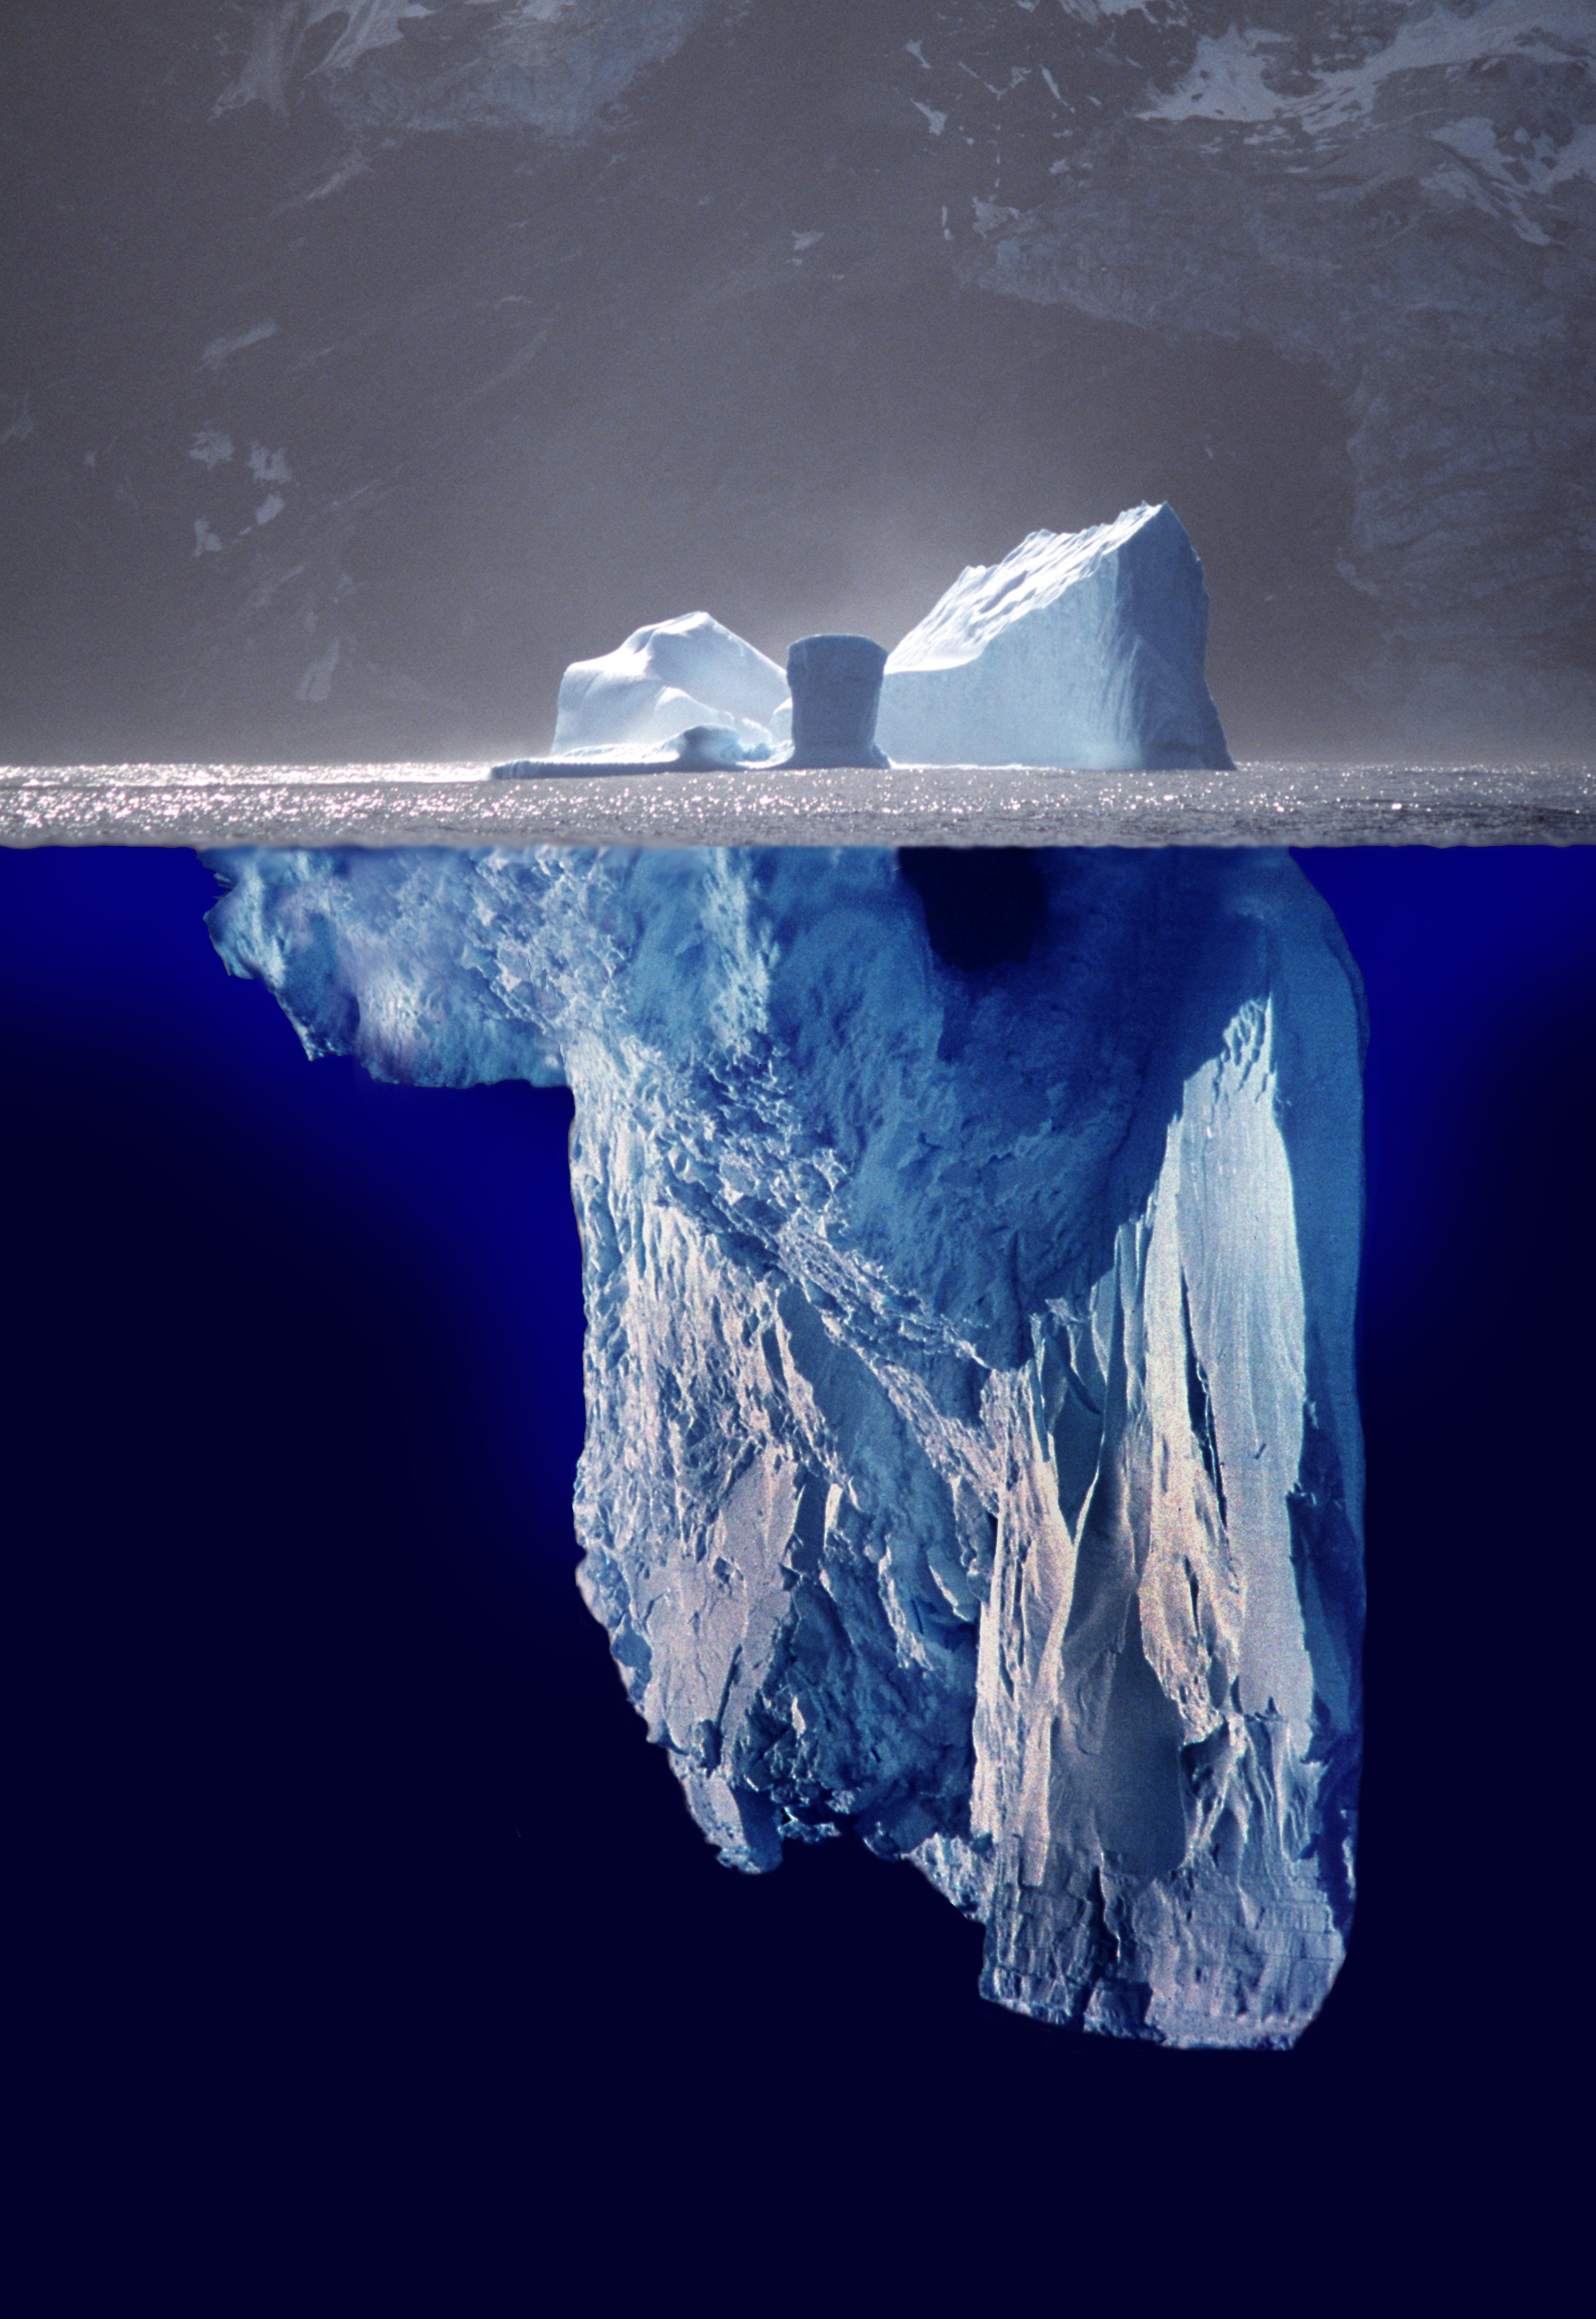 An Iceberg in Profile